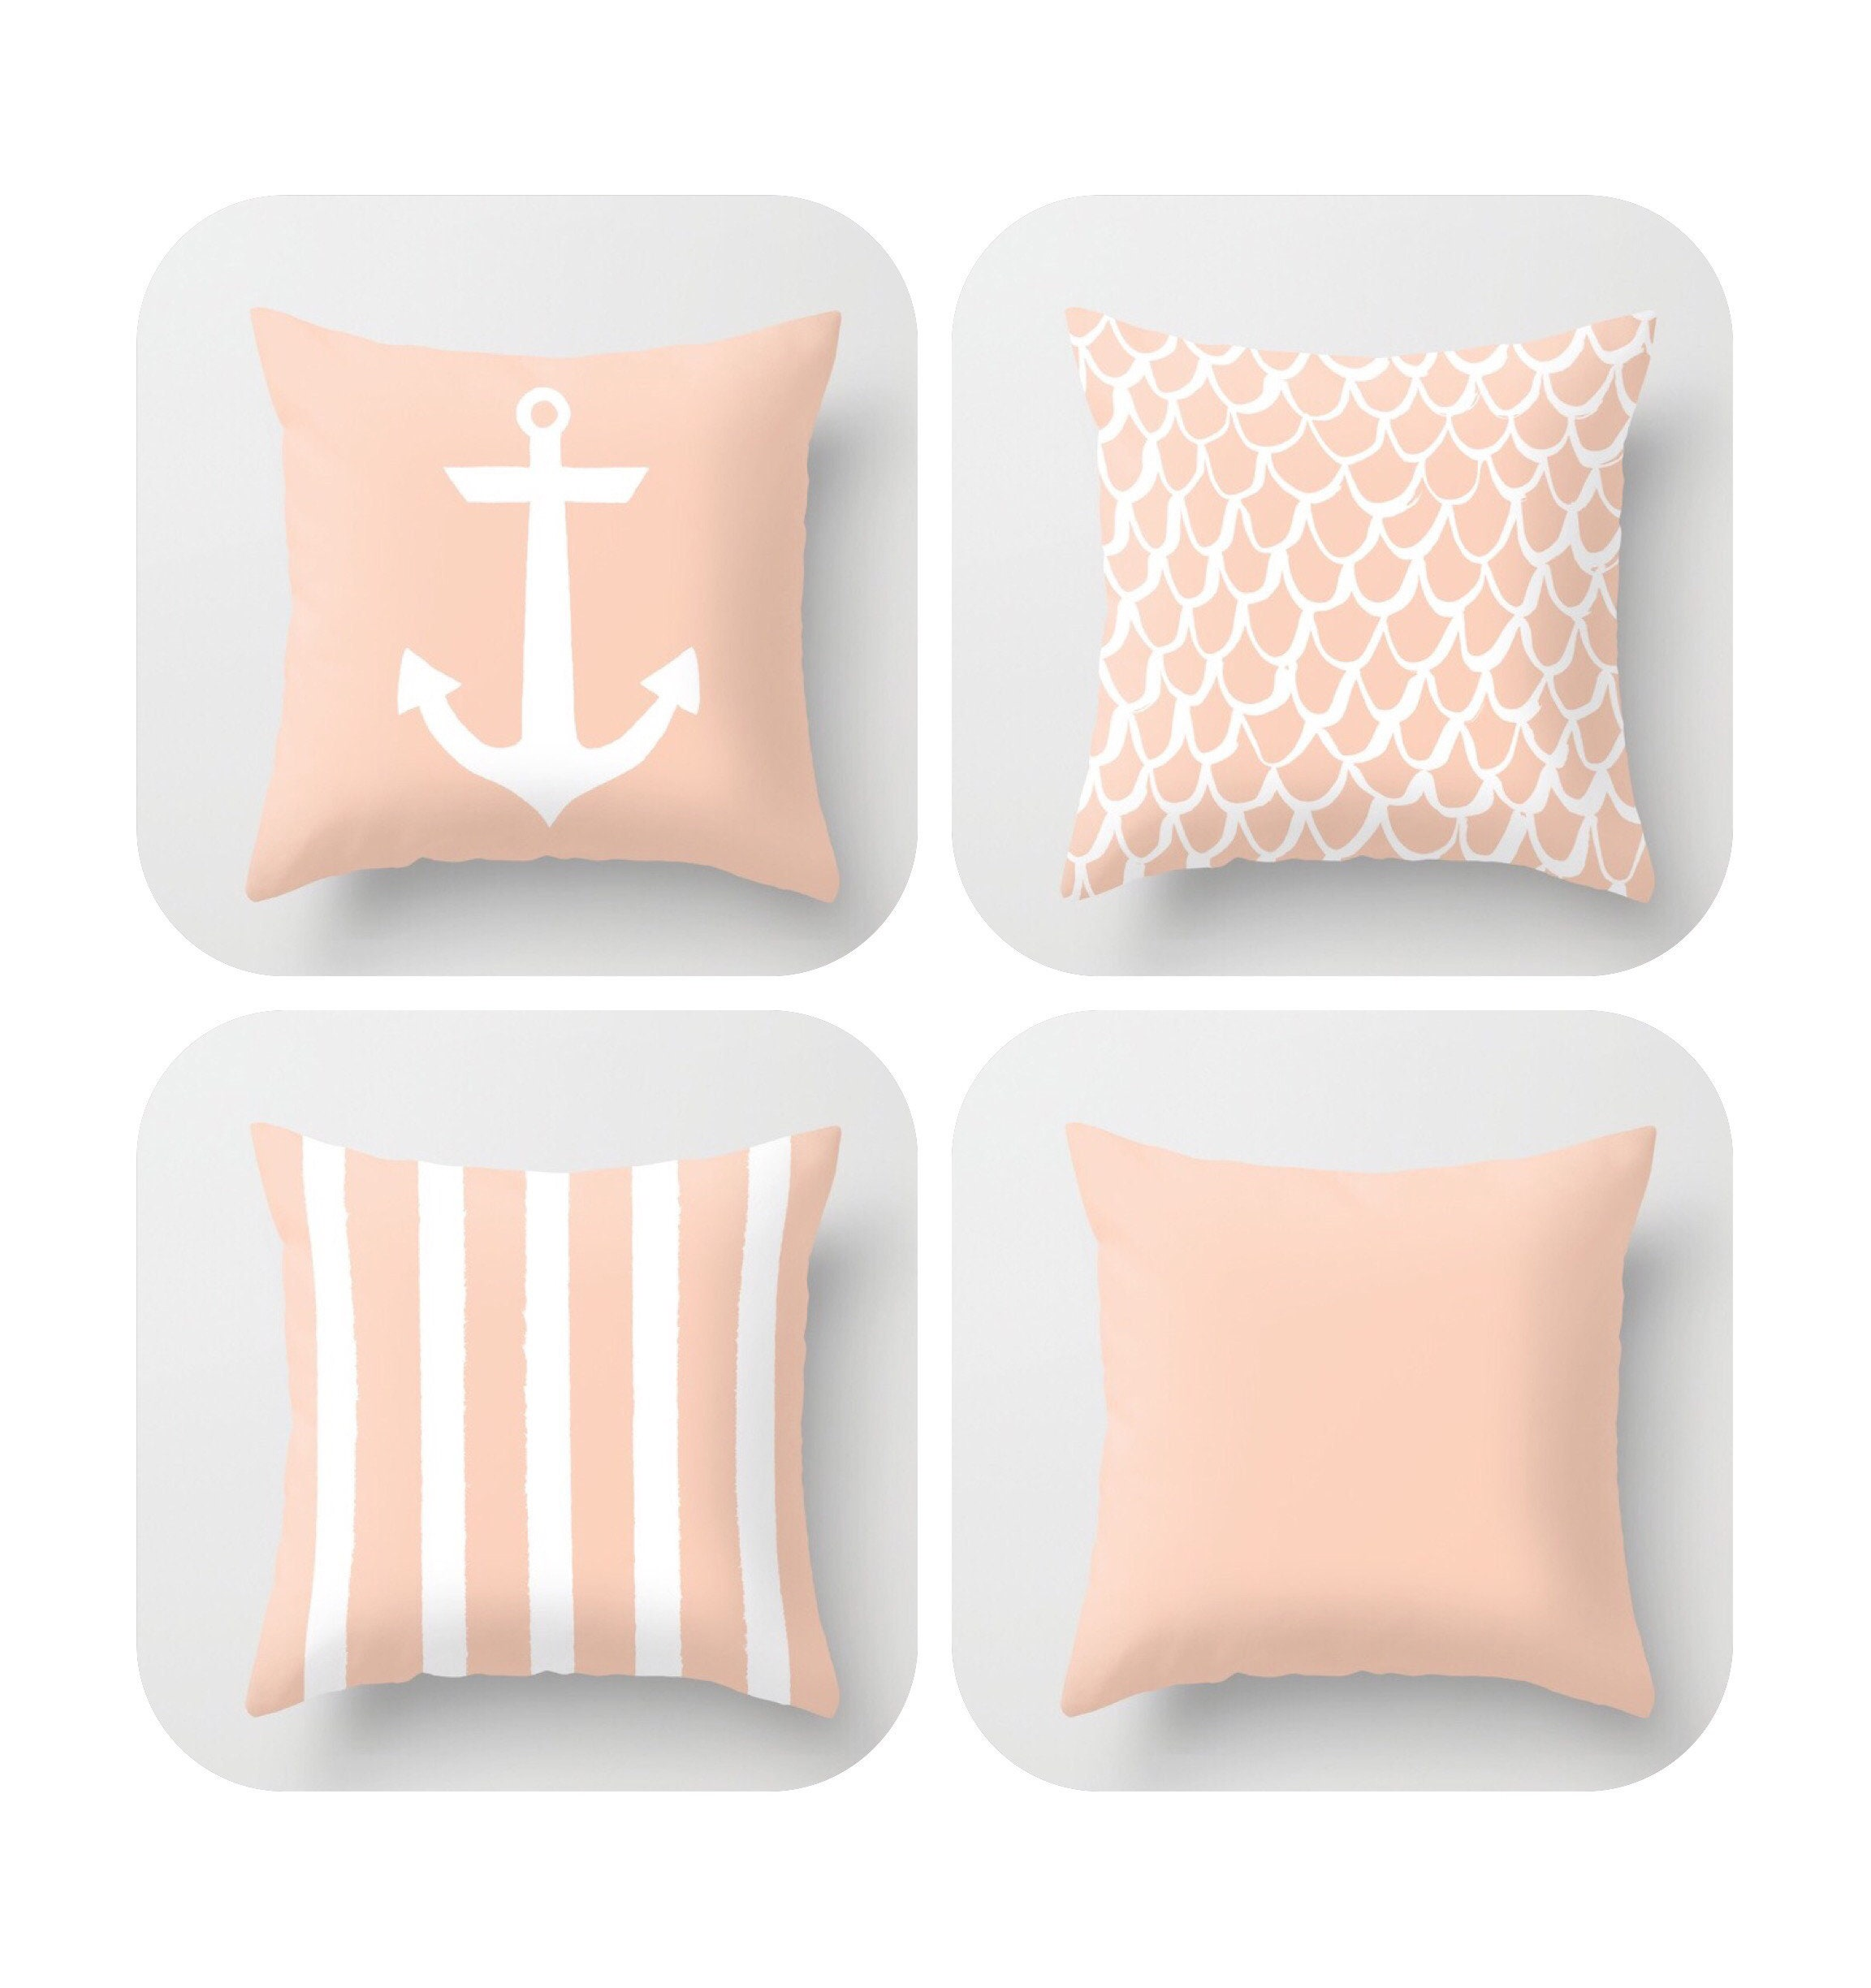 stripe peach throw coastal pink inch listing pale outdoor fullxfull cushion il rectangle patio anchor mermaid pillows pillow